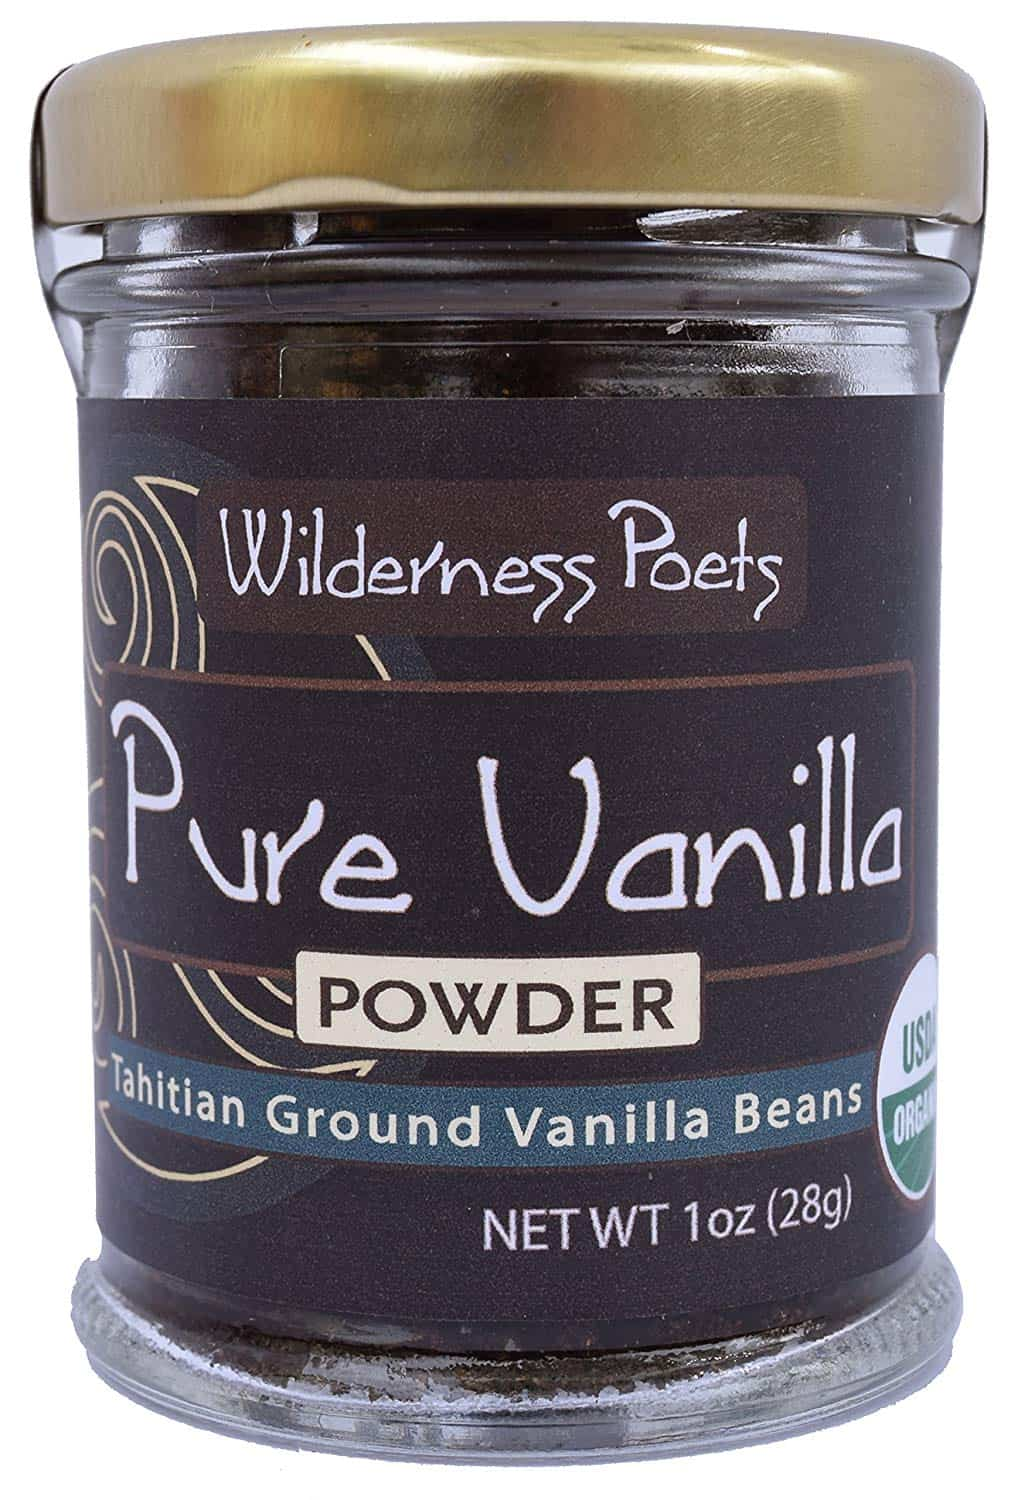 Wilderness Poets Pure Vanilla Powder Review